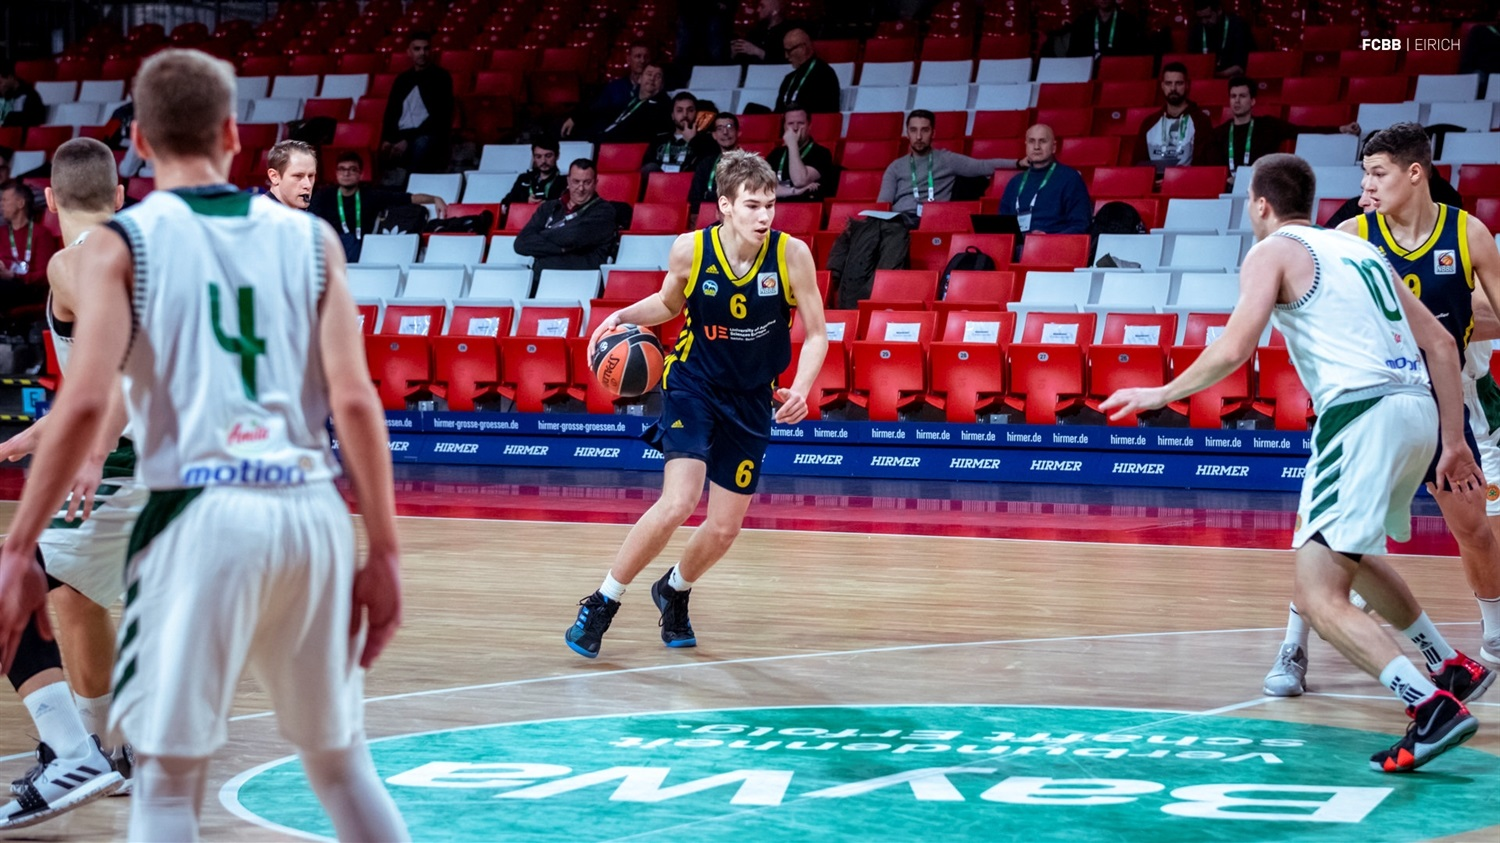 Malte Delow - U18 ALBA Berlin - ANGT Munich 2019 (photo FCBB - Eirich) JT18